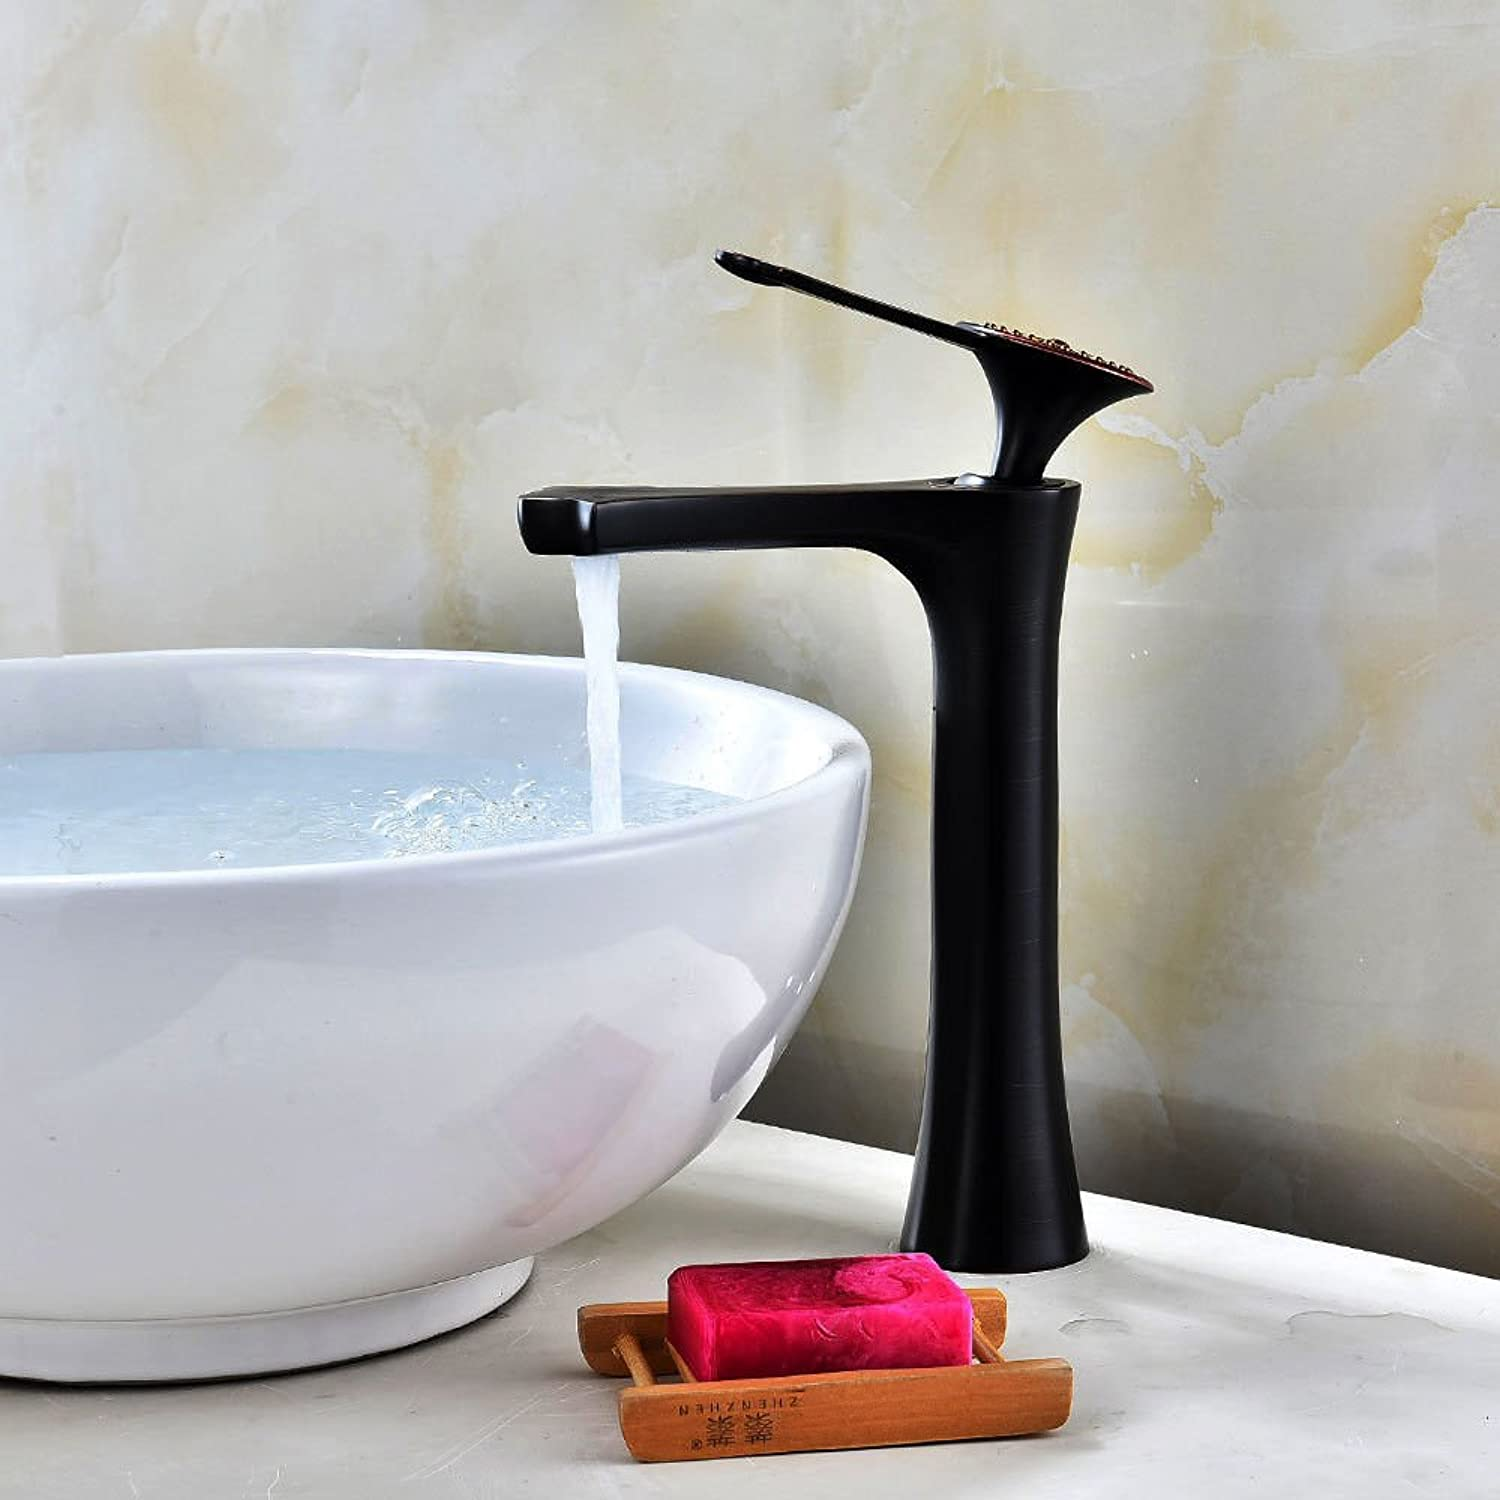 AQMMi Bathroom Sink Faucet Basin Mixer Tap Black Oil Rubbed Bronze Single Lever Single Lever Hot and Cold Water Basin Sink Tap Bathroom Bar Faucet